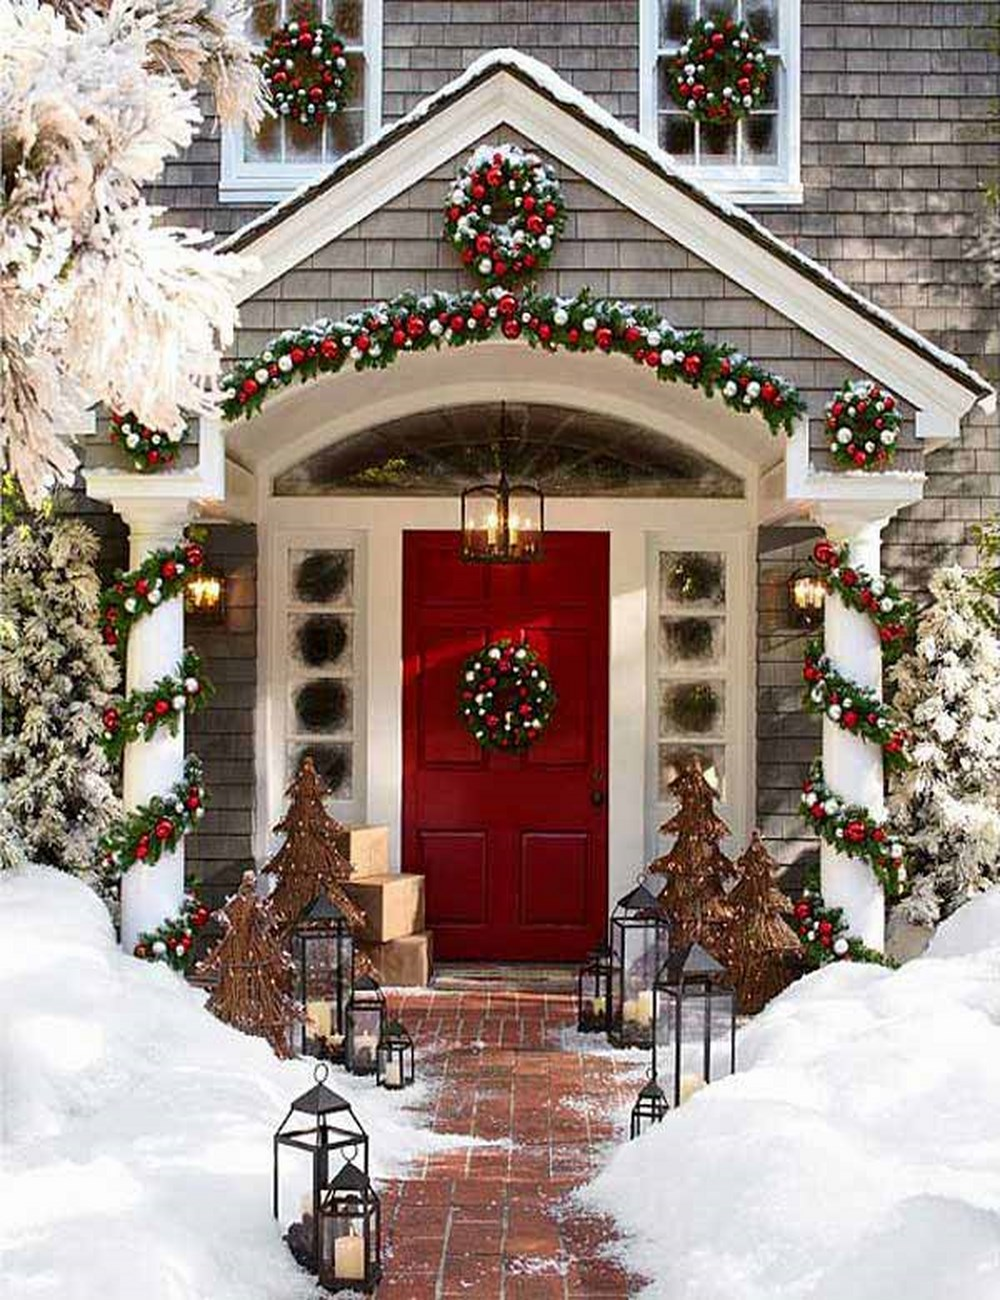 24 festive ideas for outdoor christmas decorations - Outside Christmas Decorations